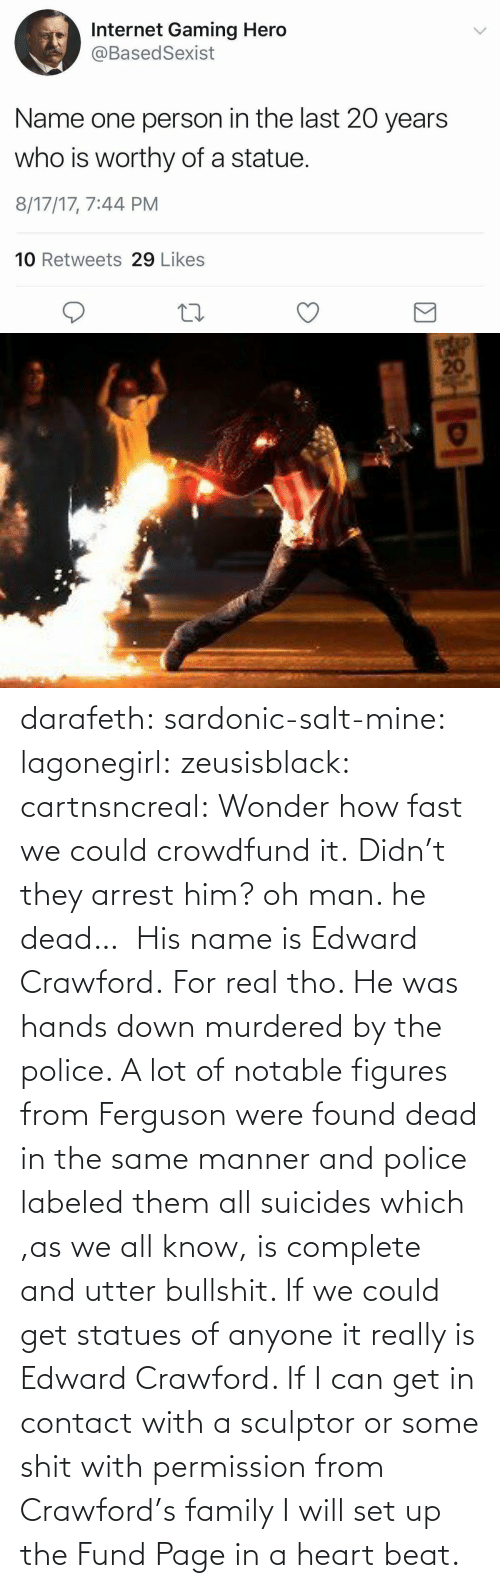 Lot: darafeth: sardonic-salt-mine:  lagonegirl:  zeusisblack:  cartnsncreal:   Wonder how fast we could crowdfund it.    Didn't they arrest him?  oh man. he dead…   His name is Edward Crawford.   For real tho. He was hands down murdered by the police. A lot of notable figures from Ferguson were found dead in the same manner and police labeled them all suicides which ,as we all know, is complete and utter bullshit.  If we could get statues of anyone it really is Edward Crawford. If I can get in contact with a sculptor or some shit with permission from Crawford's family I will set up the Fund Page in a heart beat.